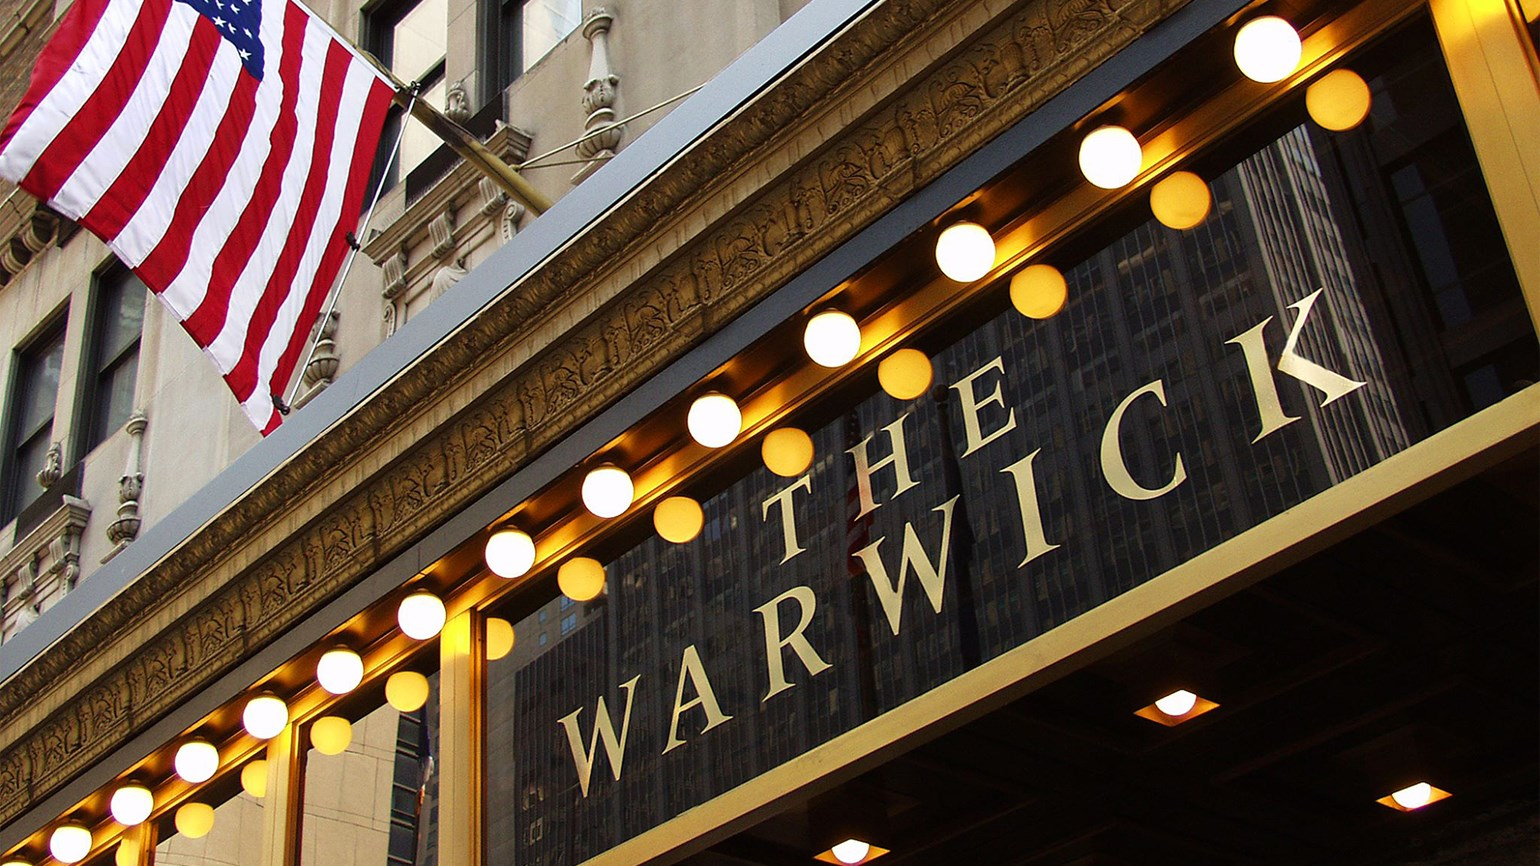 CORRECTED: Warwick Hotels' new loyalty program rewards guests with perks